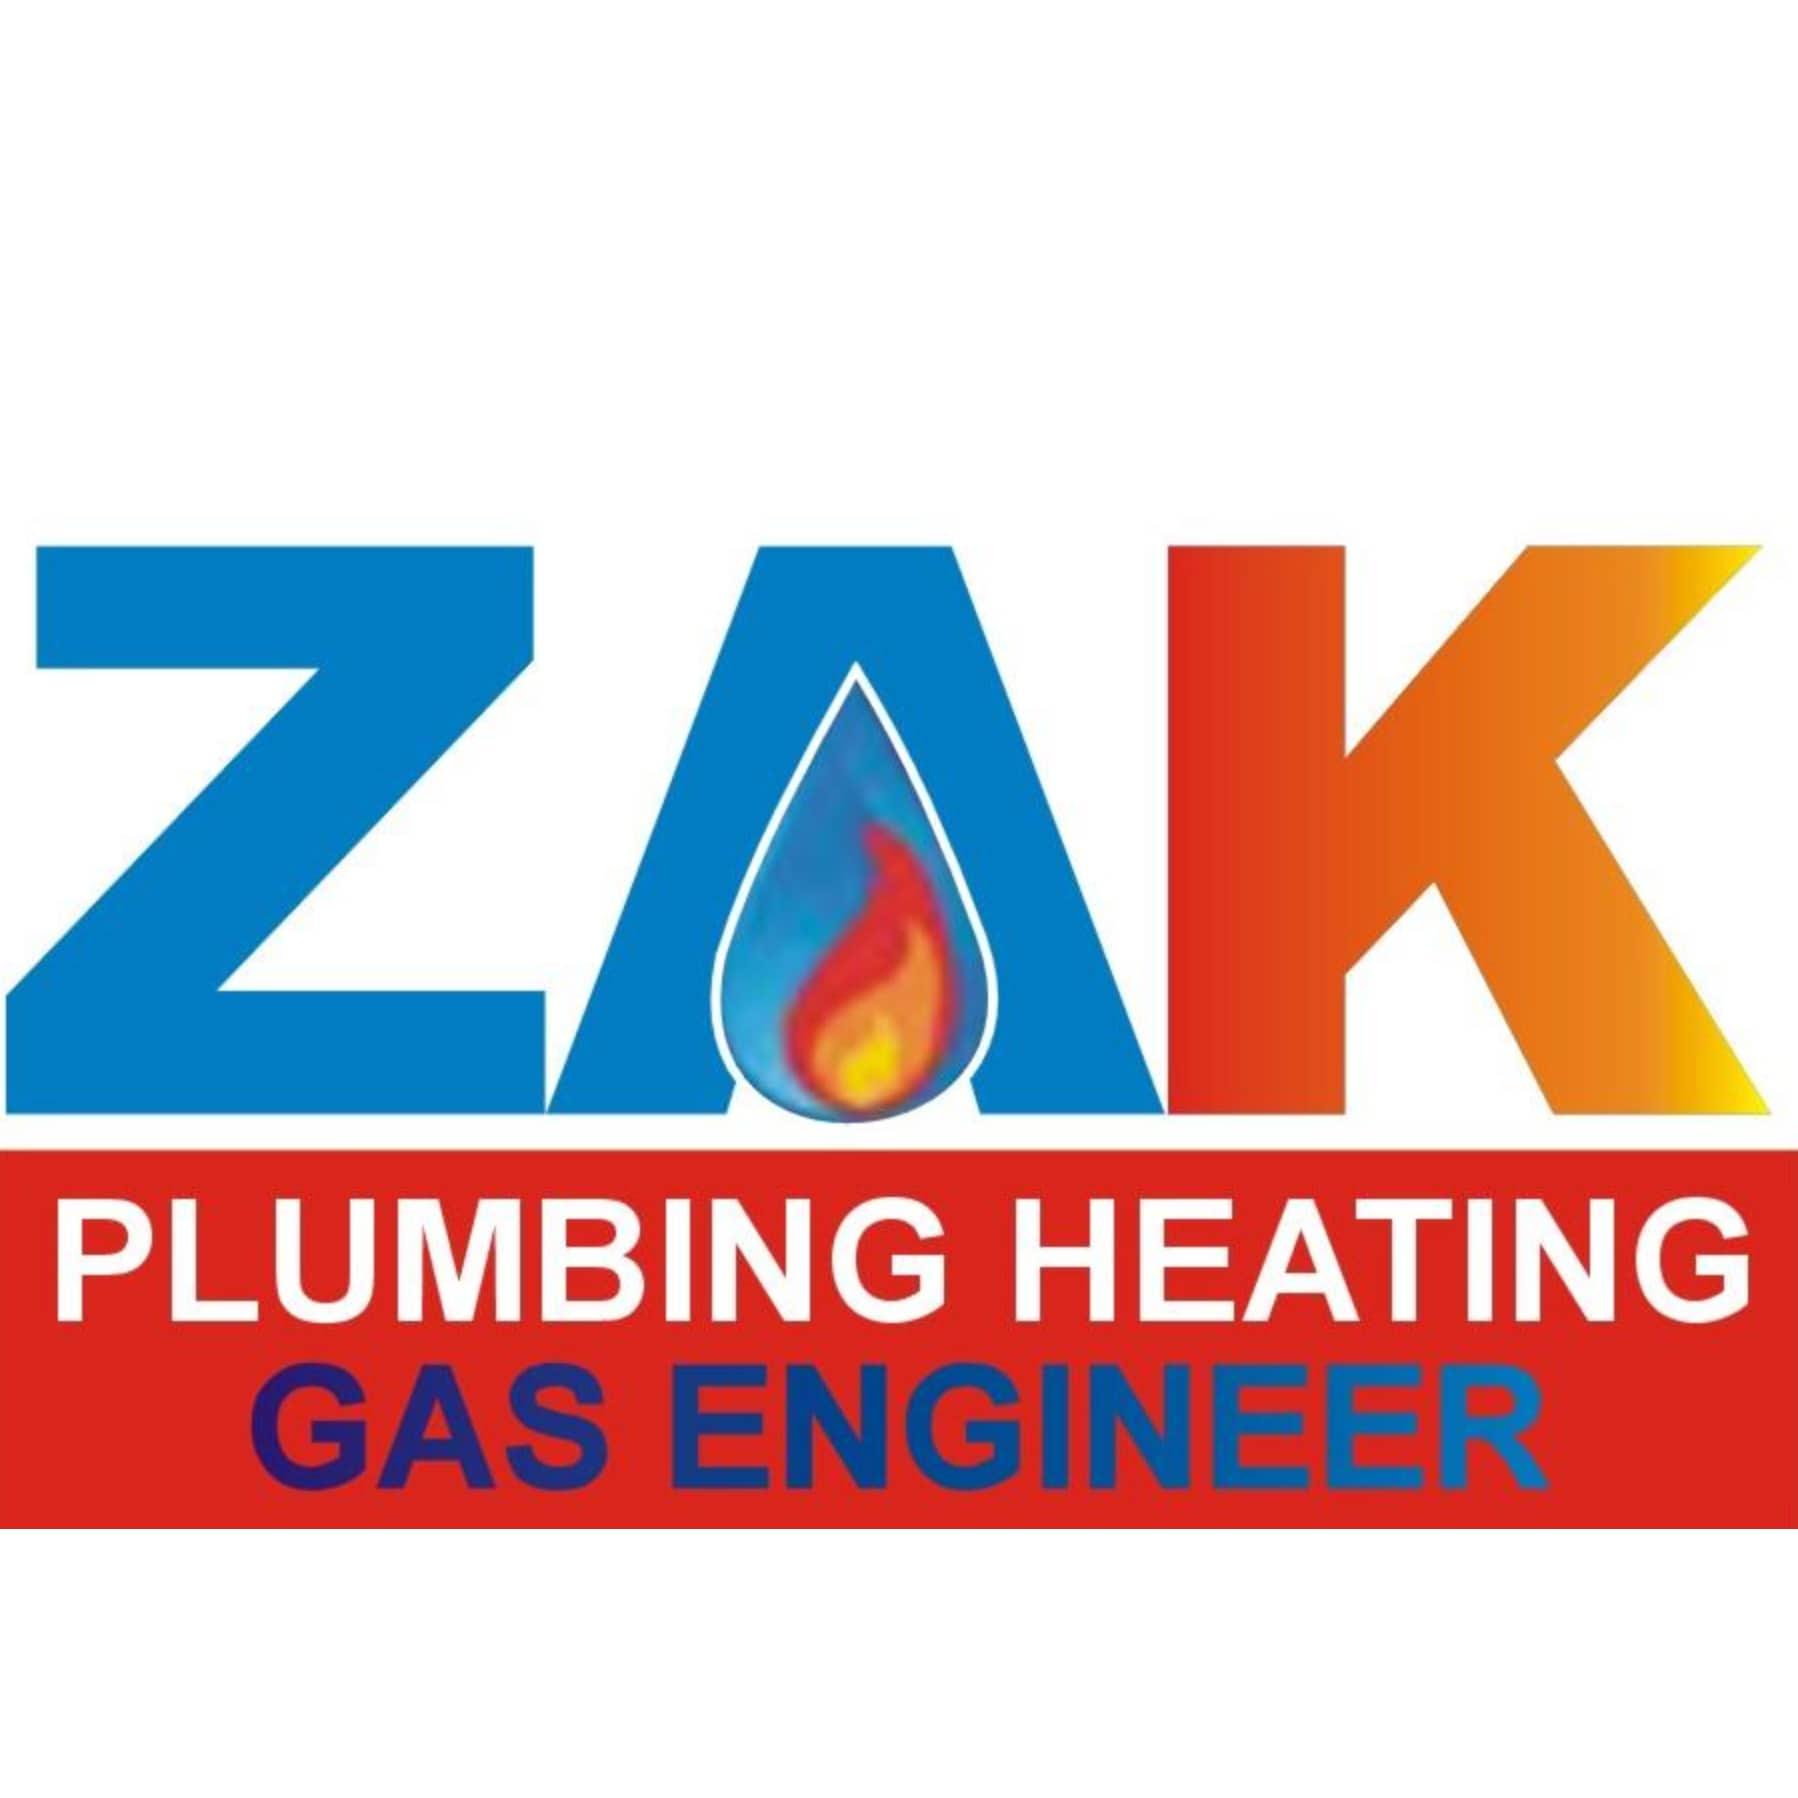 Zak plumbing & Heating services